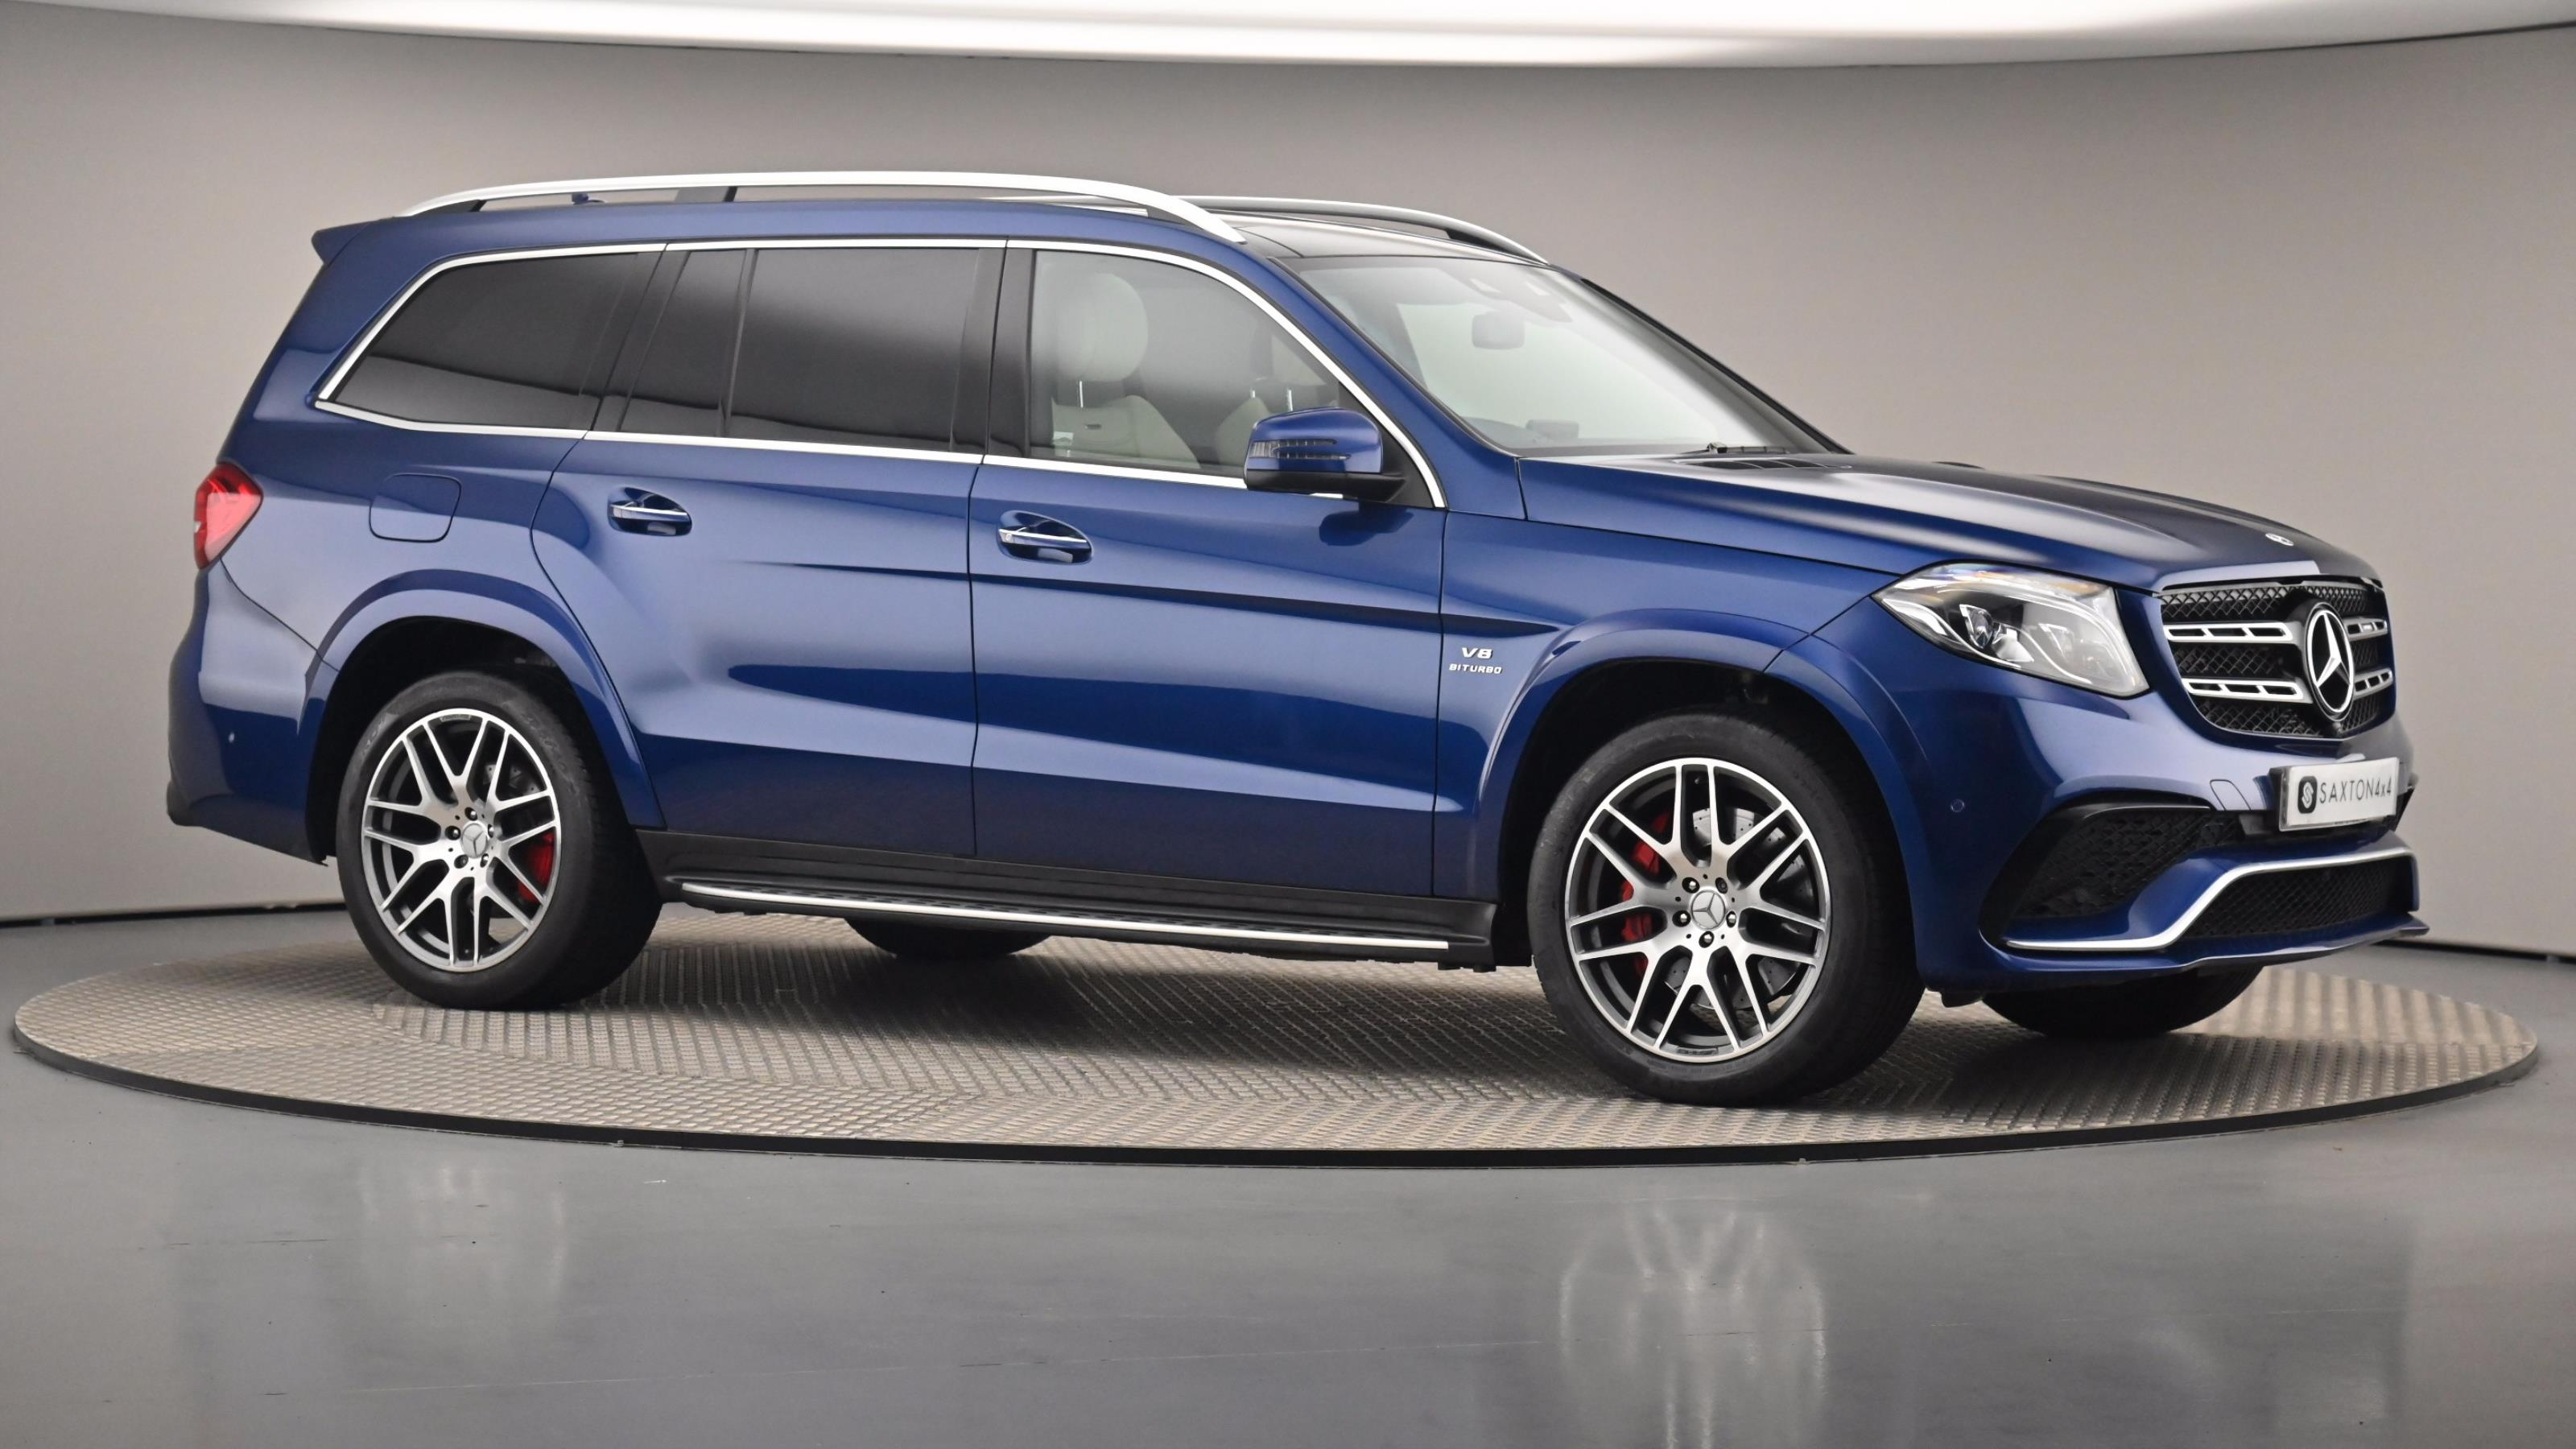 Used 2017 Mercedes-Benz GLS GLS 63 4Matic 5dr 7G-Tronic at Saxton4x4